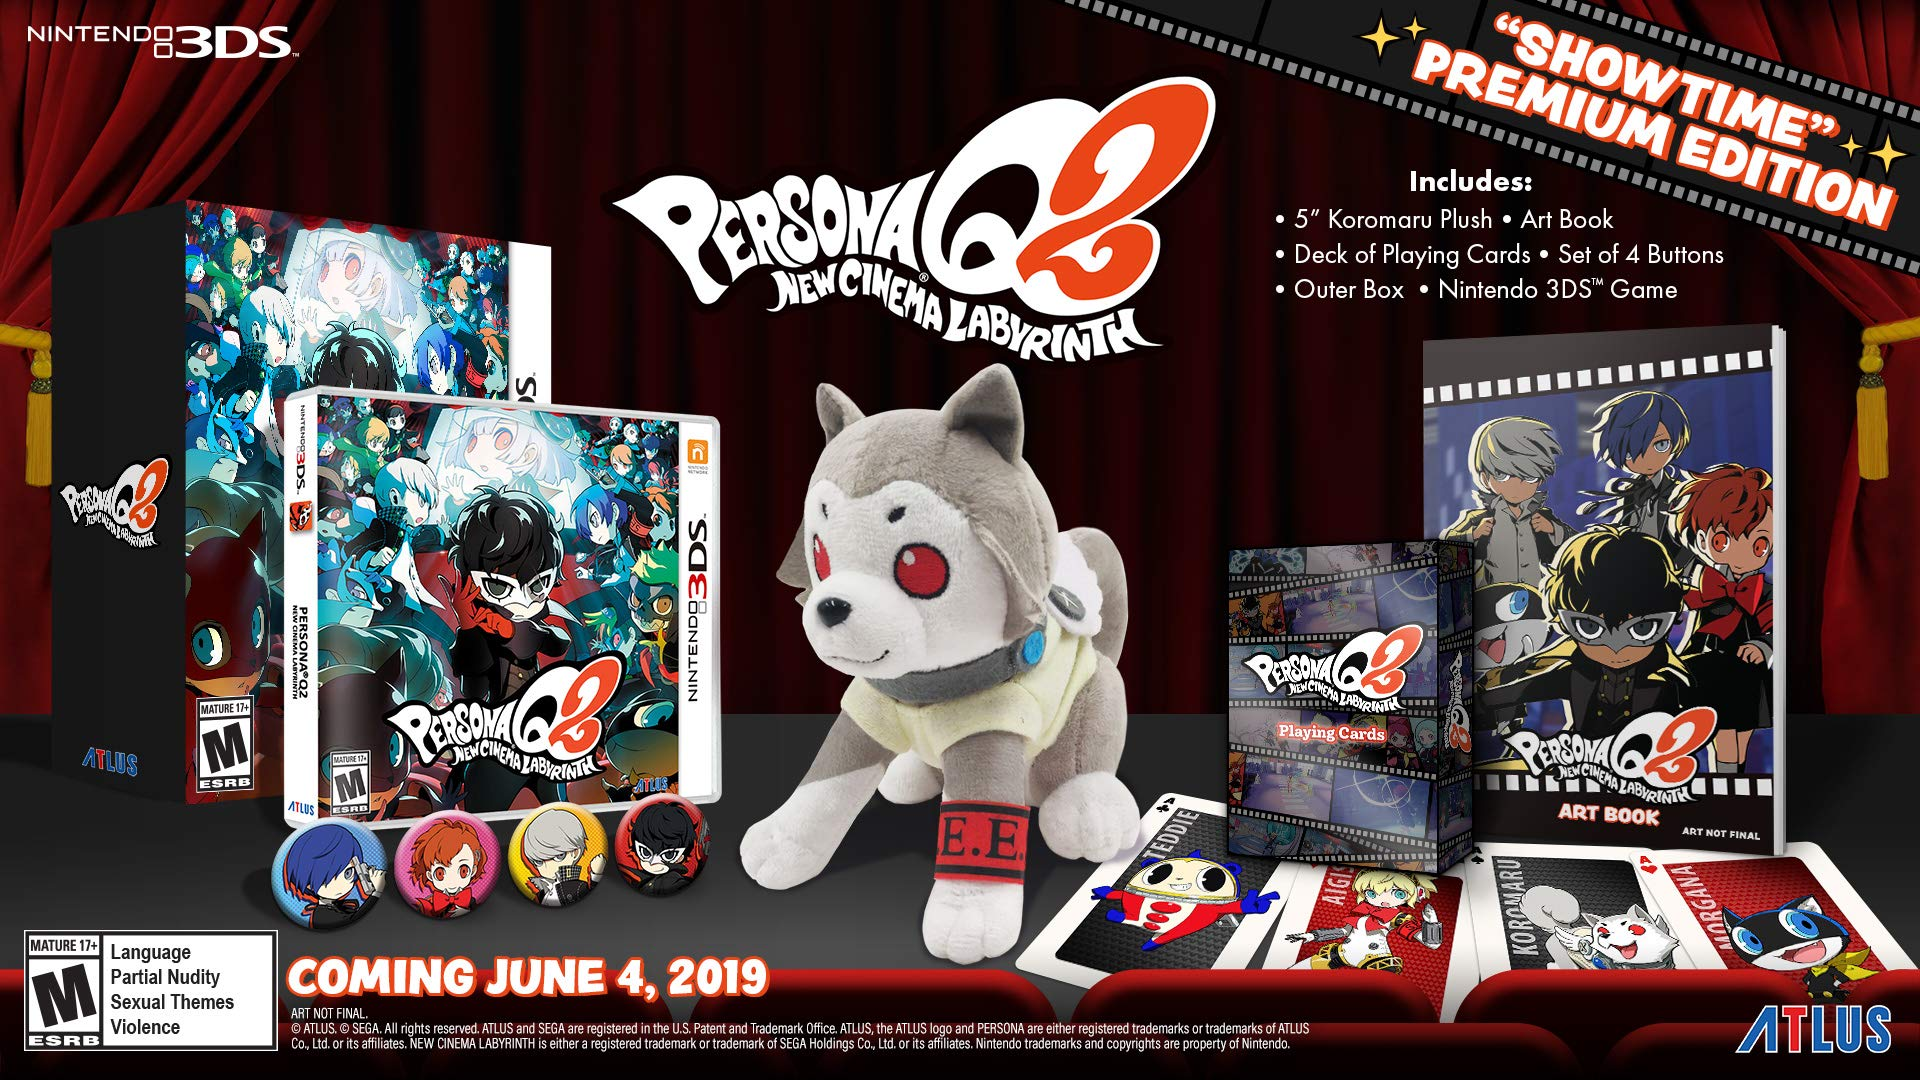 Persona Q2: New Cinema Labyrinth ''Showtime'' Premium Edition - Nintendo 3DS